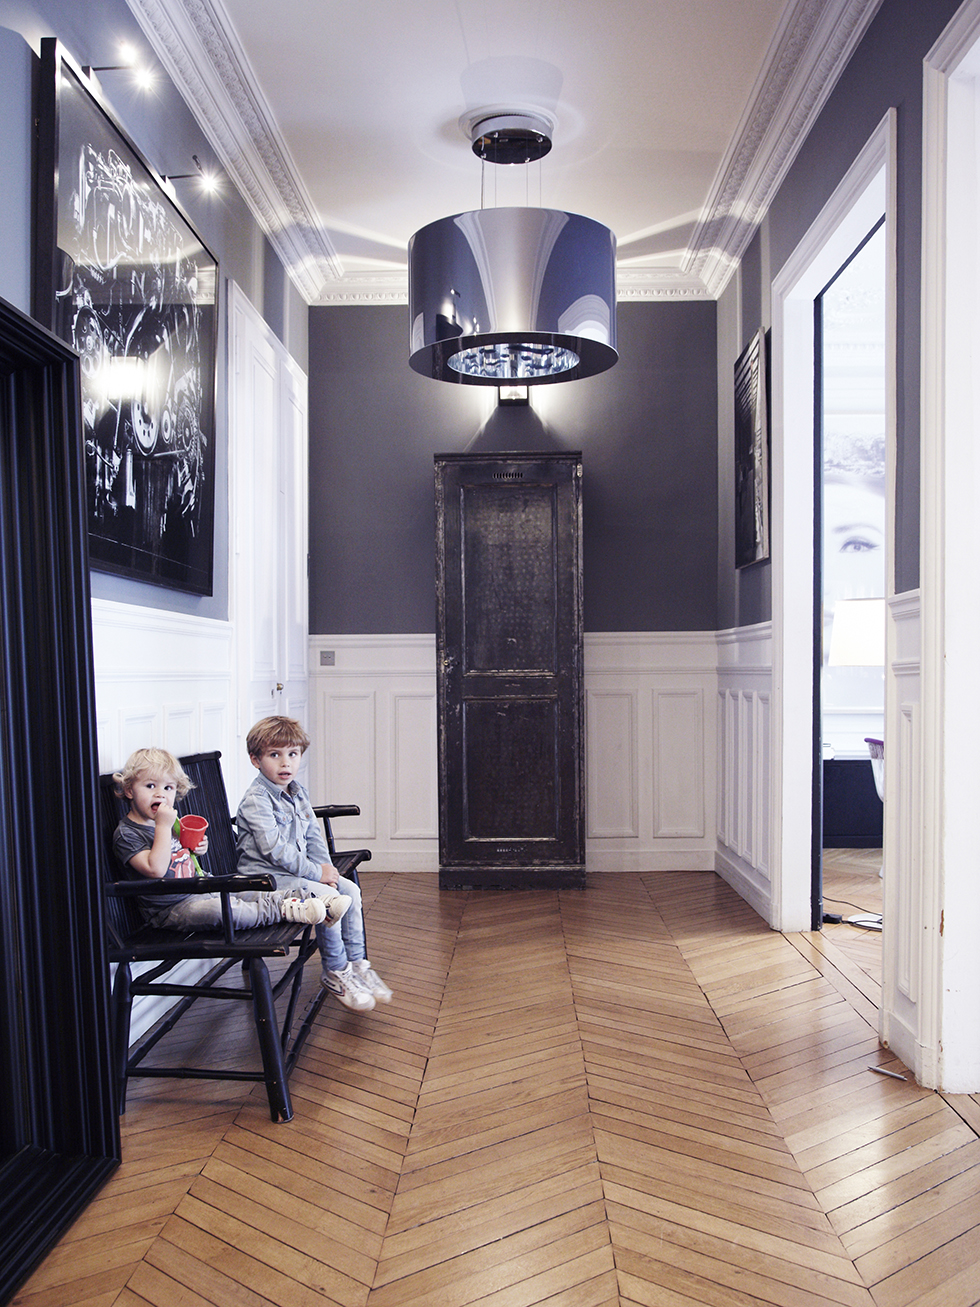 Un intérieur parisien so chic - Frenchy Fancy